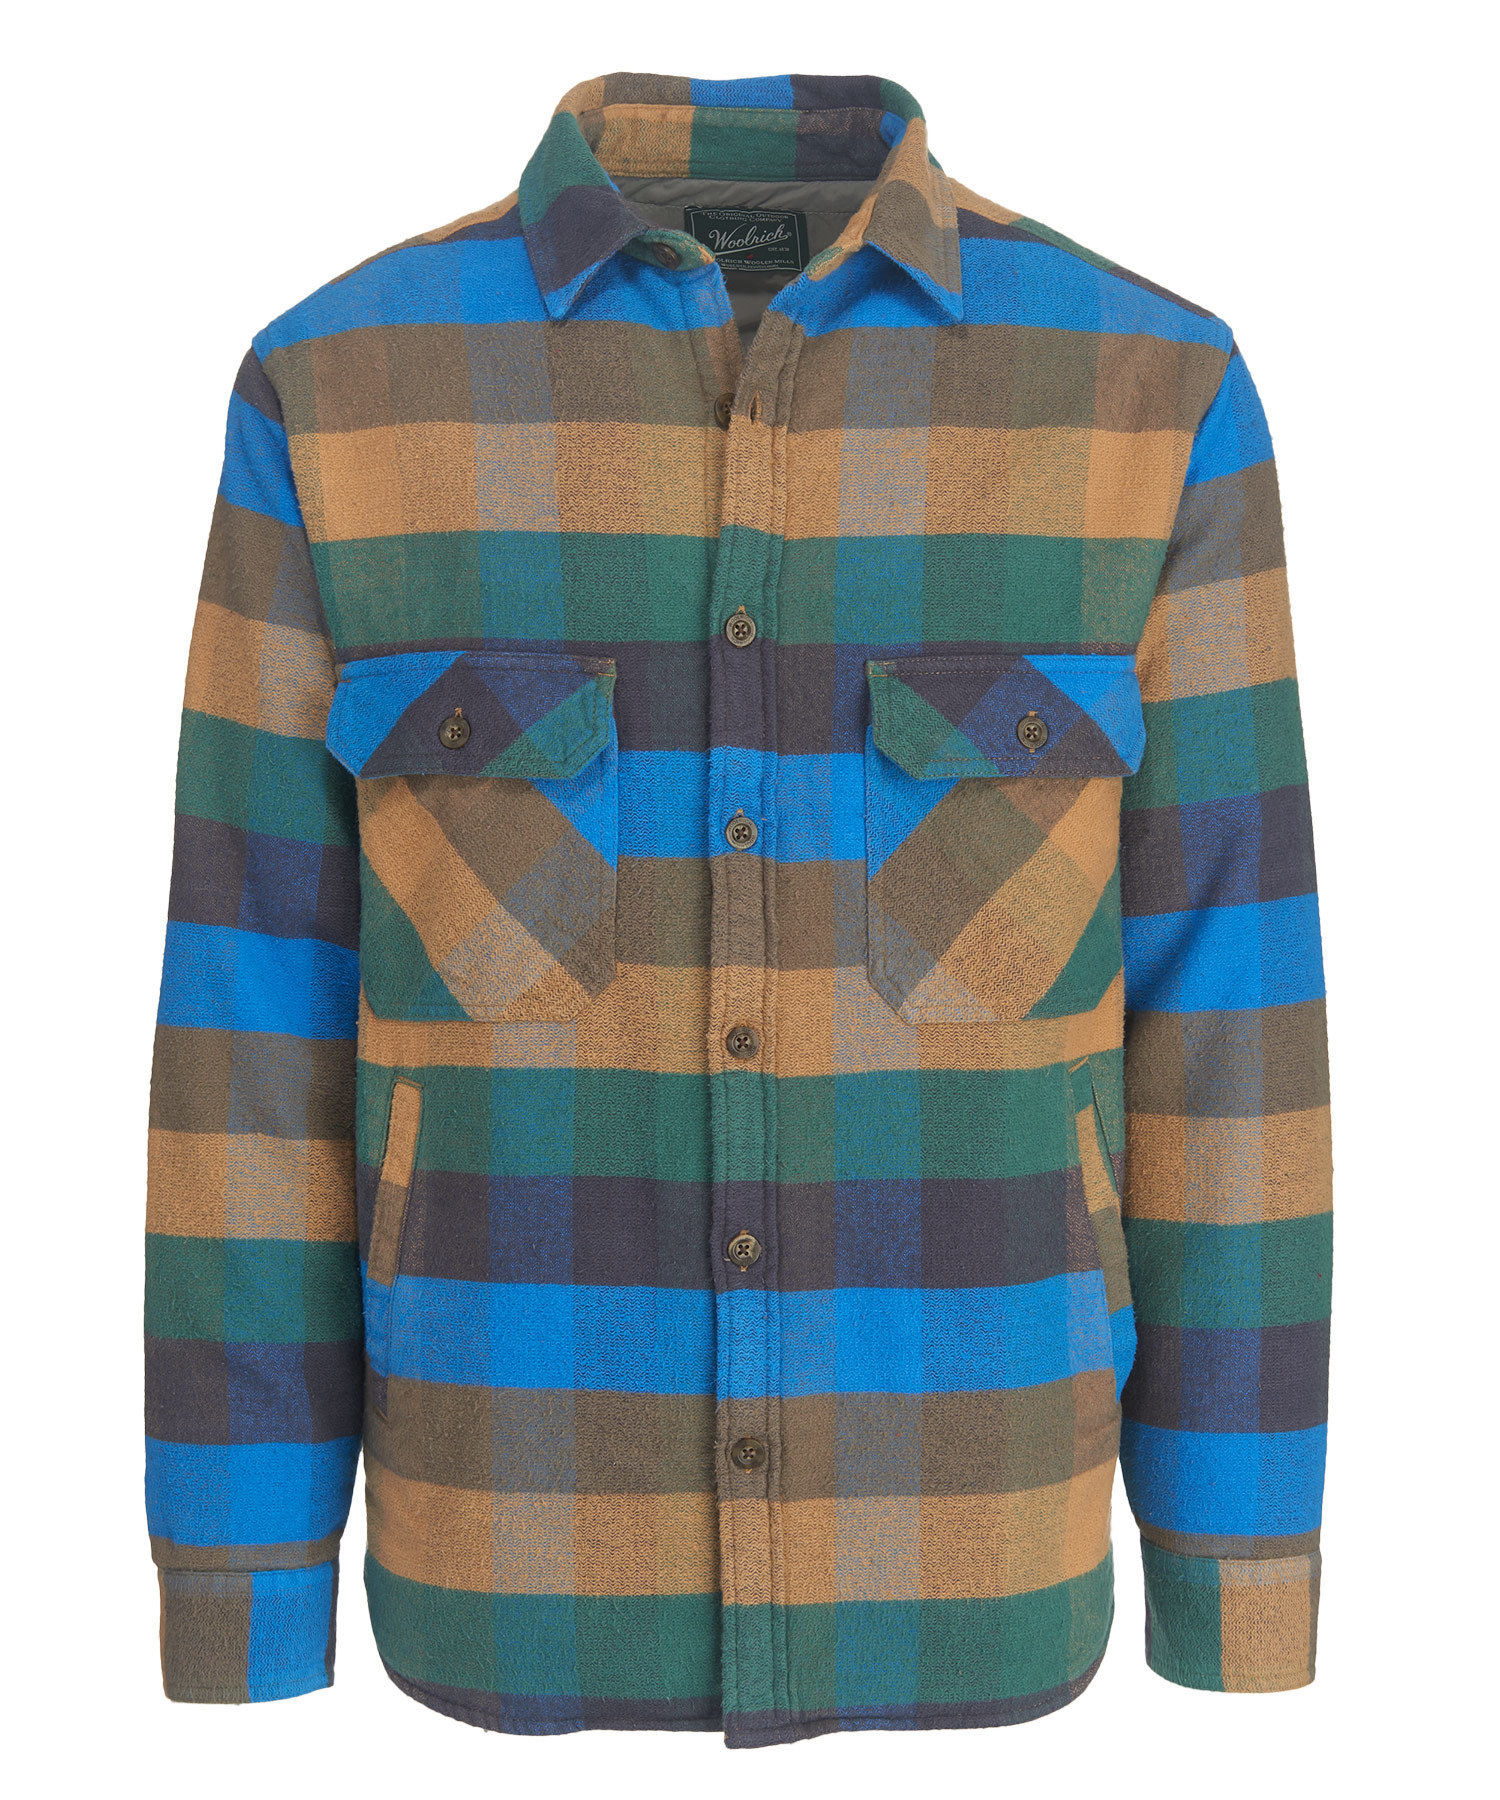 2c3b293ac Woolrich Oxbow Bend Plaid Flannel Shirt Jacket - Men's, Up to 53% Off —  CampSaver